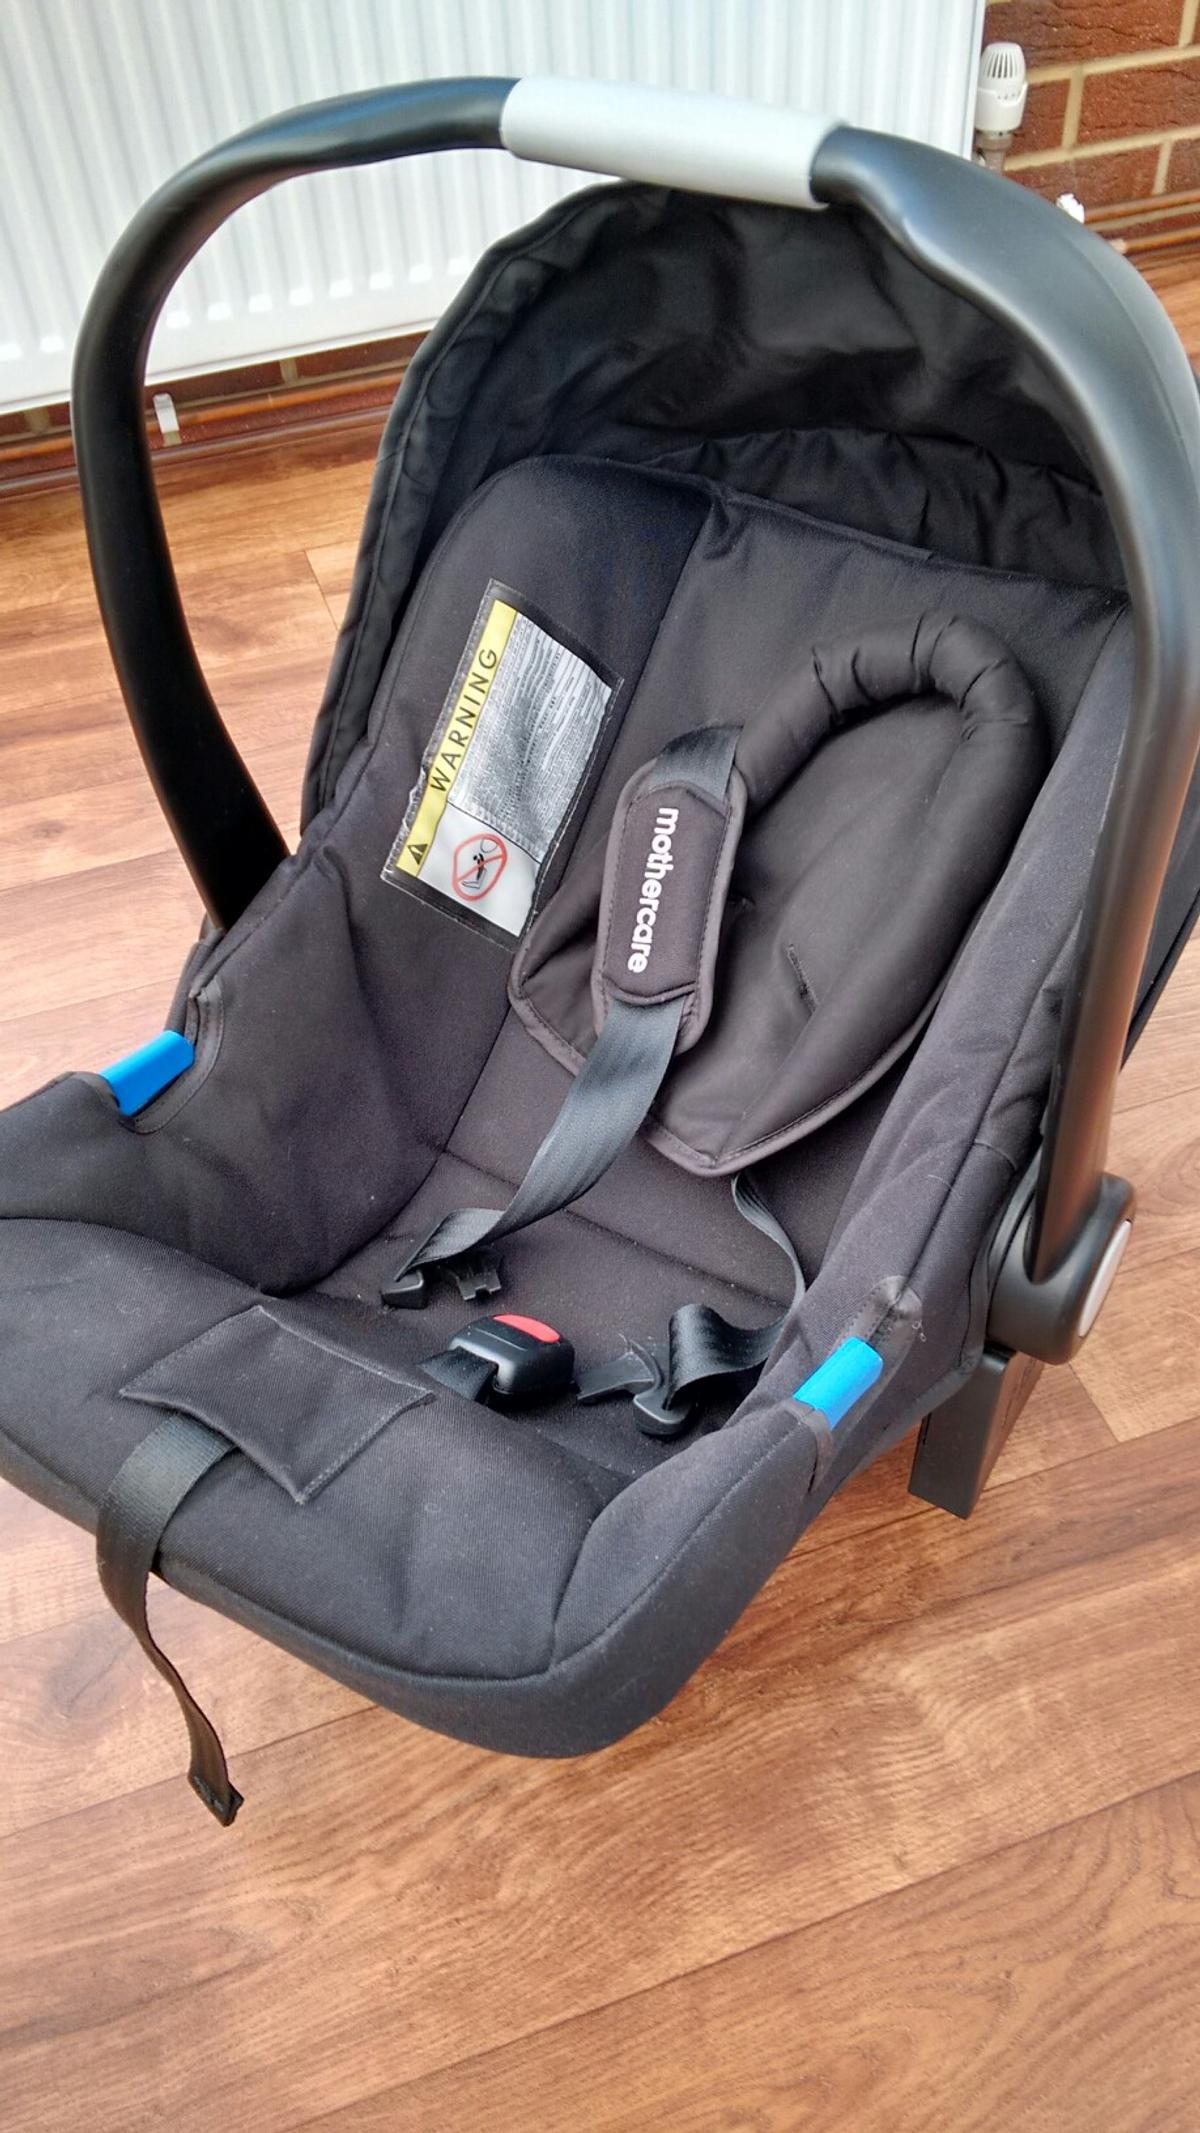 Maxi Cosi Car Seat On Mothercare Xpedior Mothercare Xpedior 4 Wheel Pram Pushchair